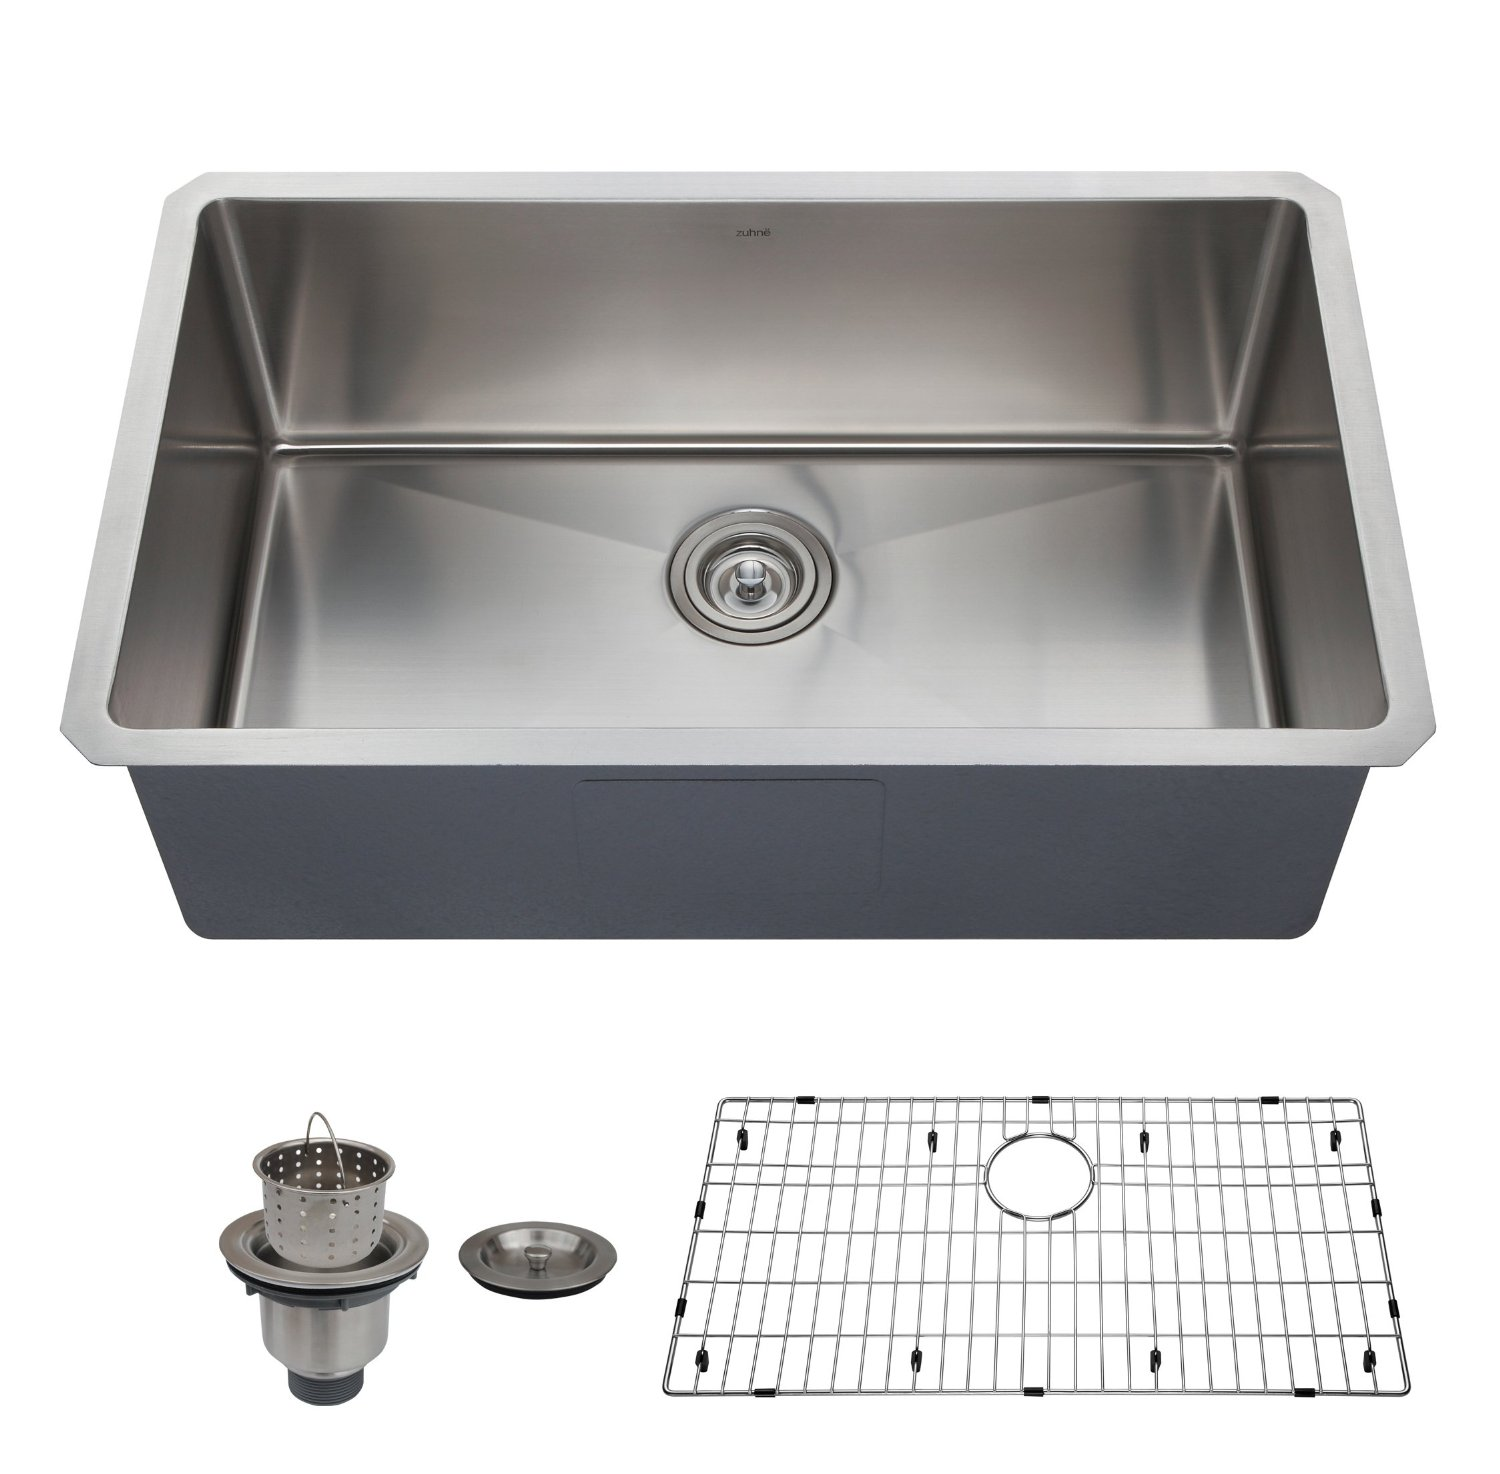 Best single bowl kitchen sink reviews buying guide bkfh for Best faucet for kitchen sink